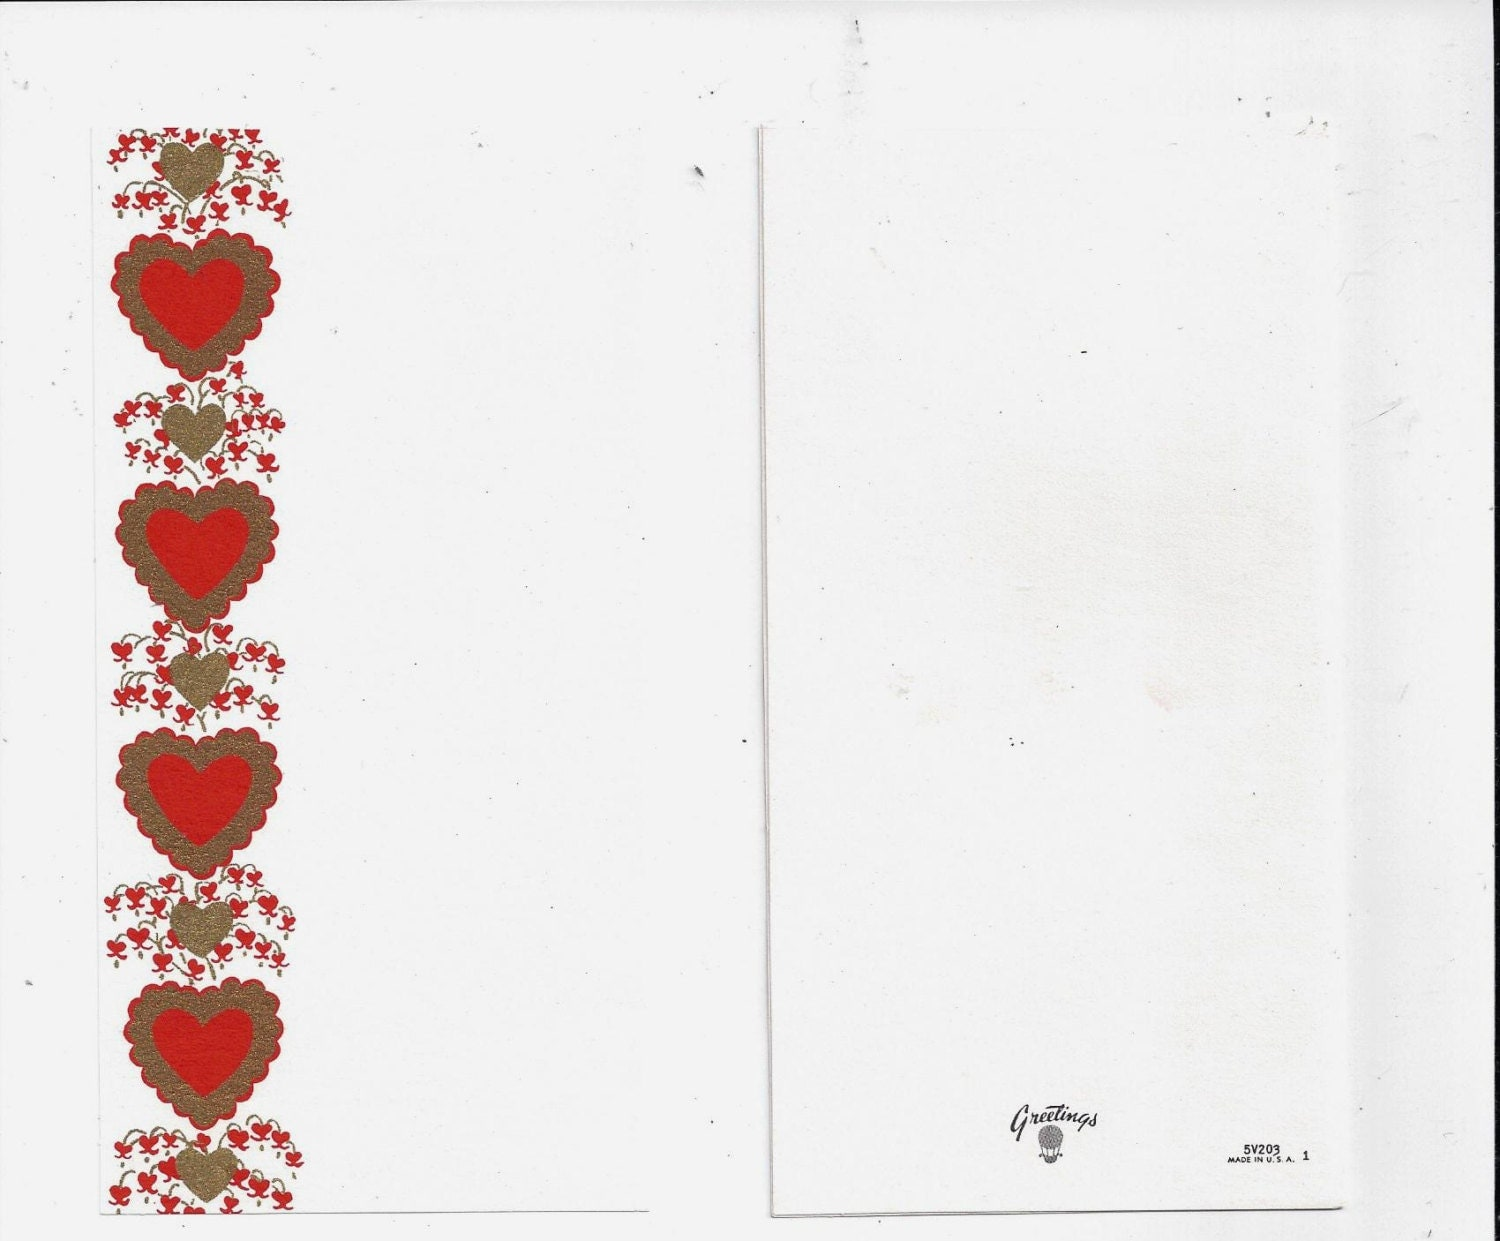 1960s Vintage Valentine Card by Greetings with Glitter and Gold on